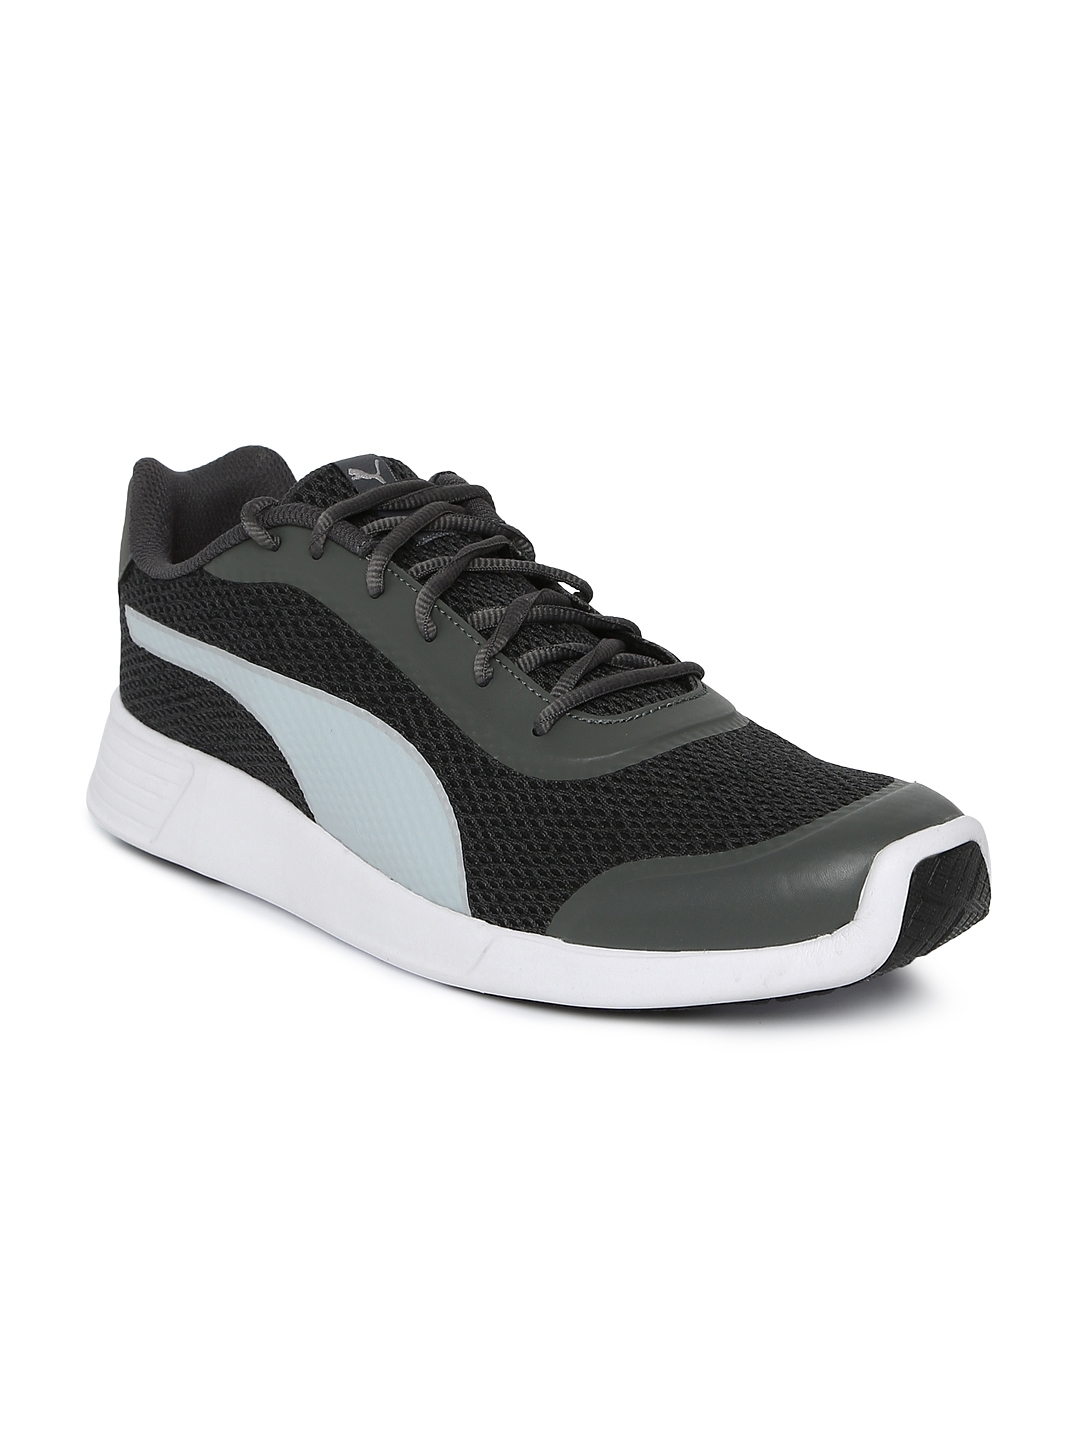 e0746cb49b Puma Men Black FST Runner v2 IDP Running Shoes. This product is already at  its best price